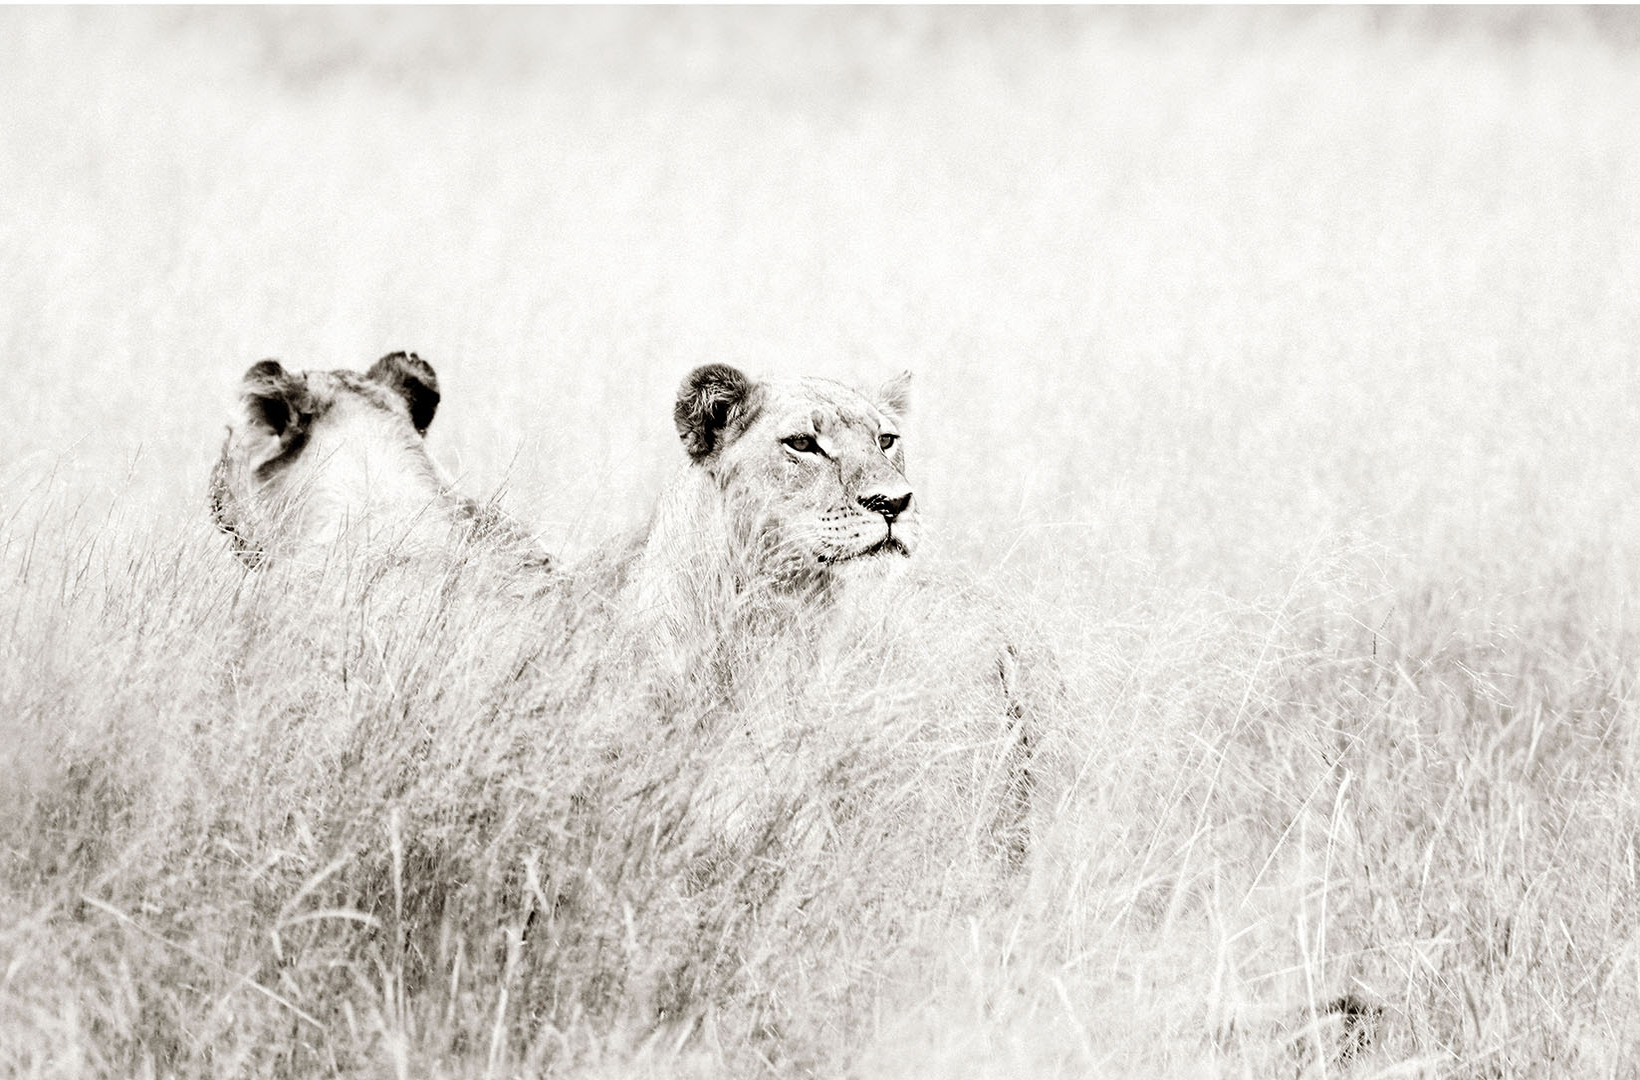 Two African lionesses scan the landscape from opposing angles at Mbiza, Hwange National Park Zimbabwe